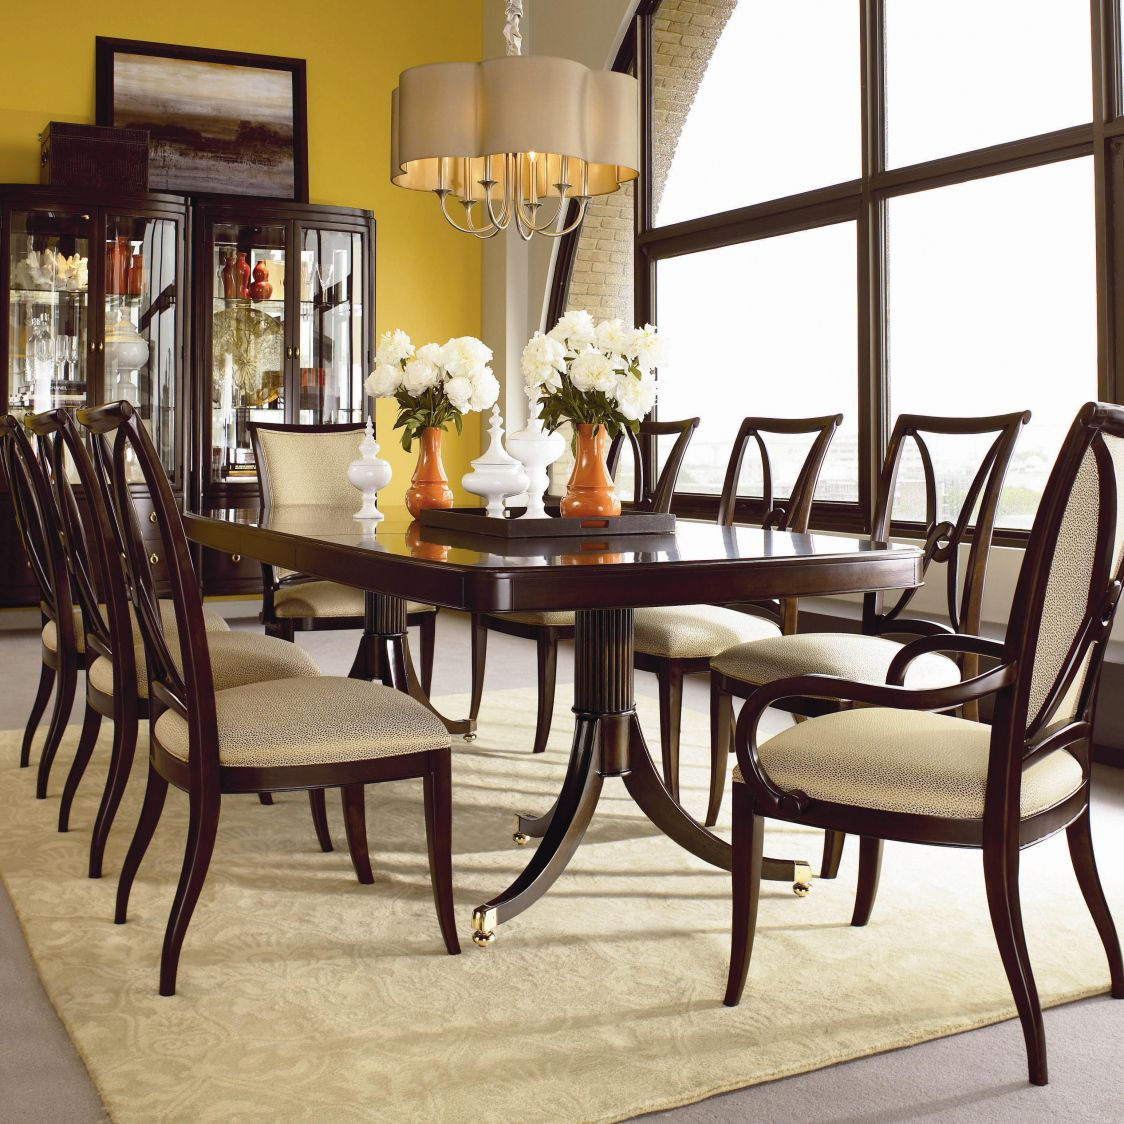 Thomasville Dining Room Sets Discontinued  Cool Furniture Ideas Inspiration Thomasville Dining Room Chairs Inspiration